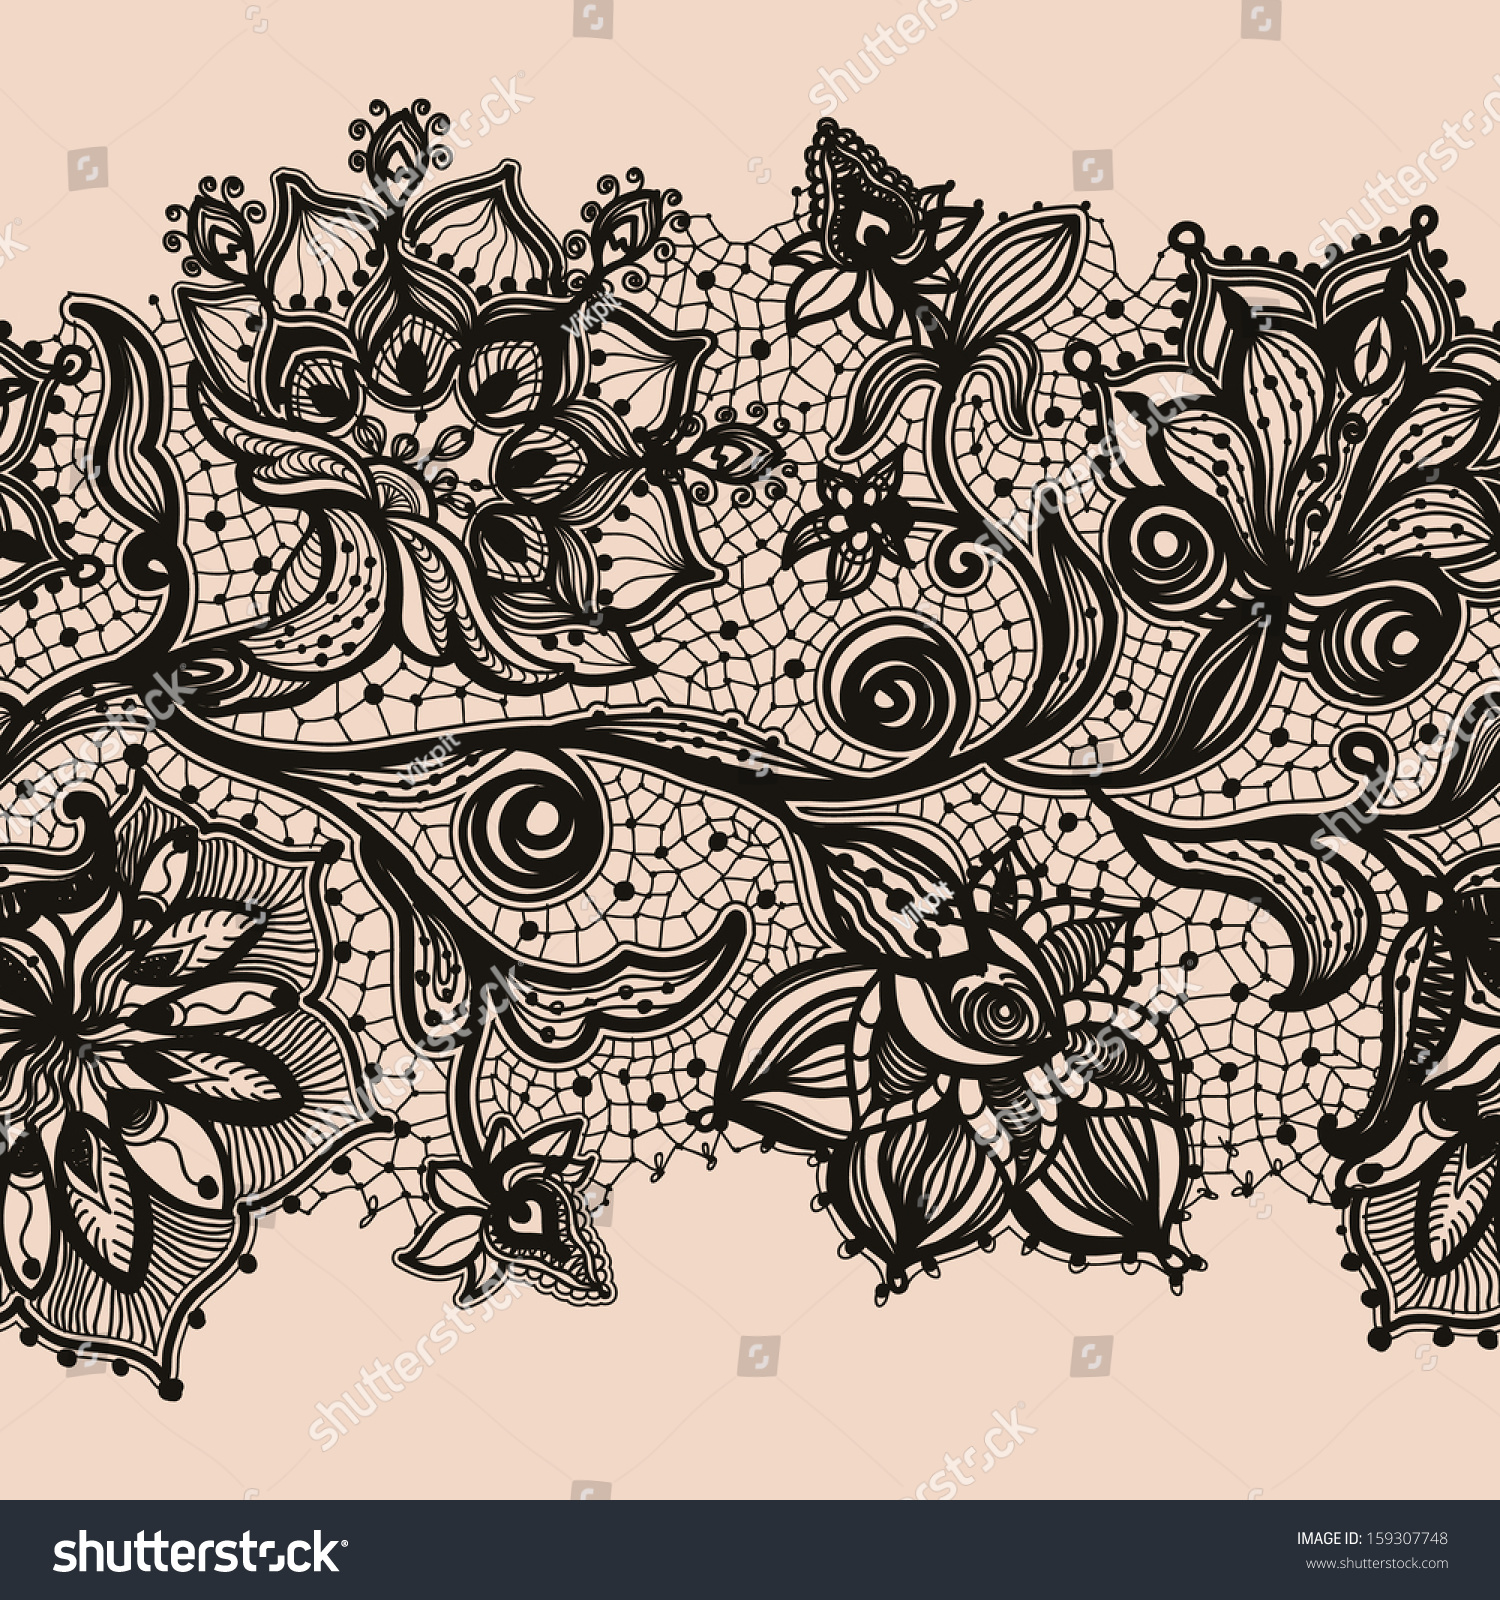 Abstract Lace Ribbon Seamless Pattern Elements Stock Vector ...